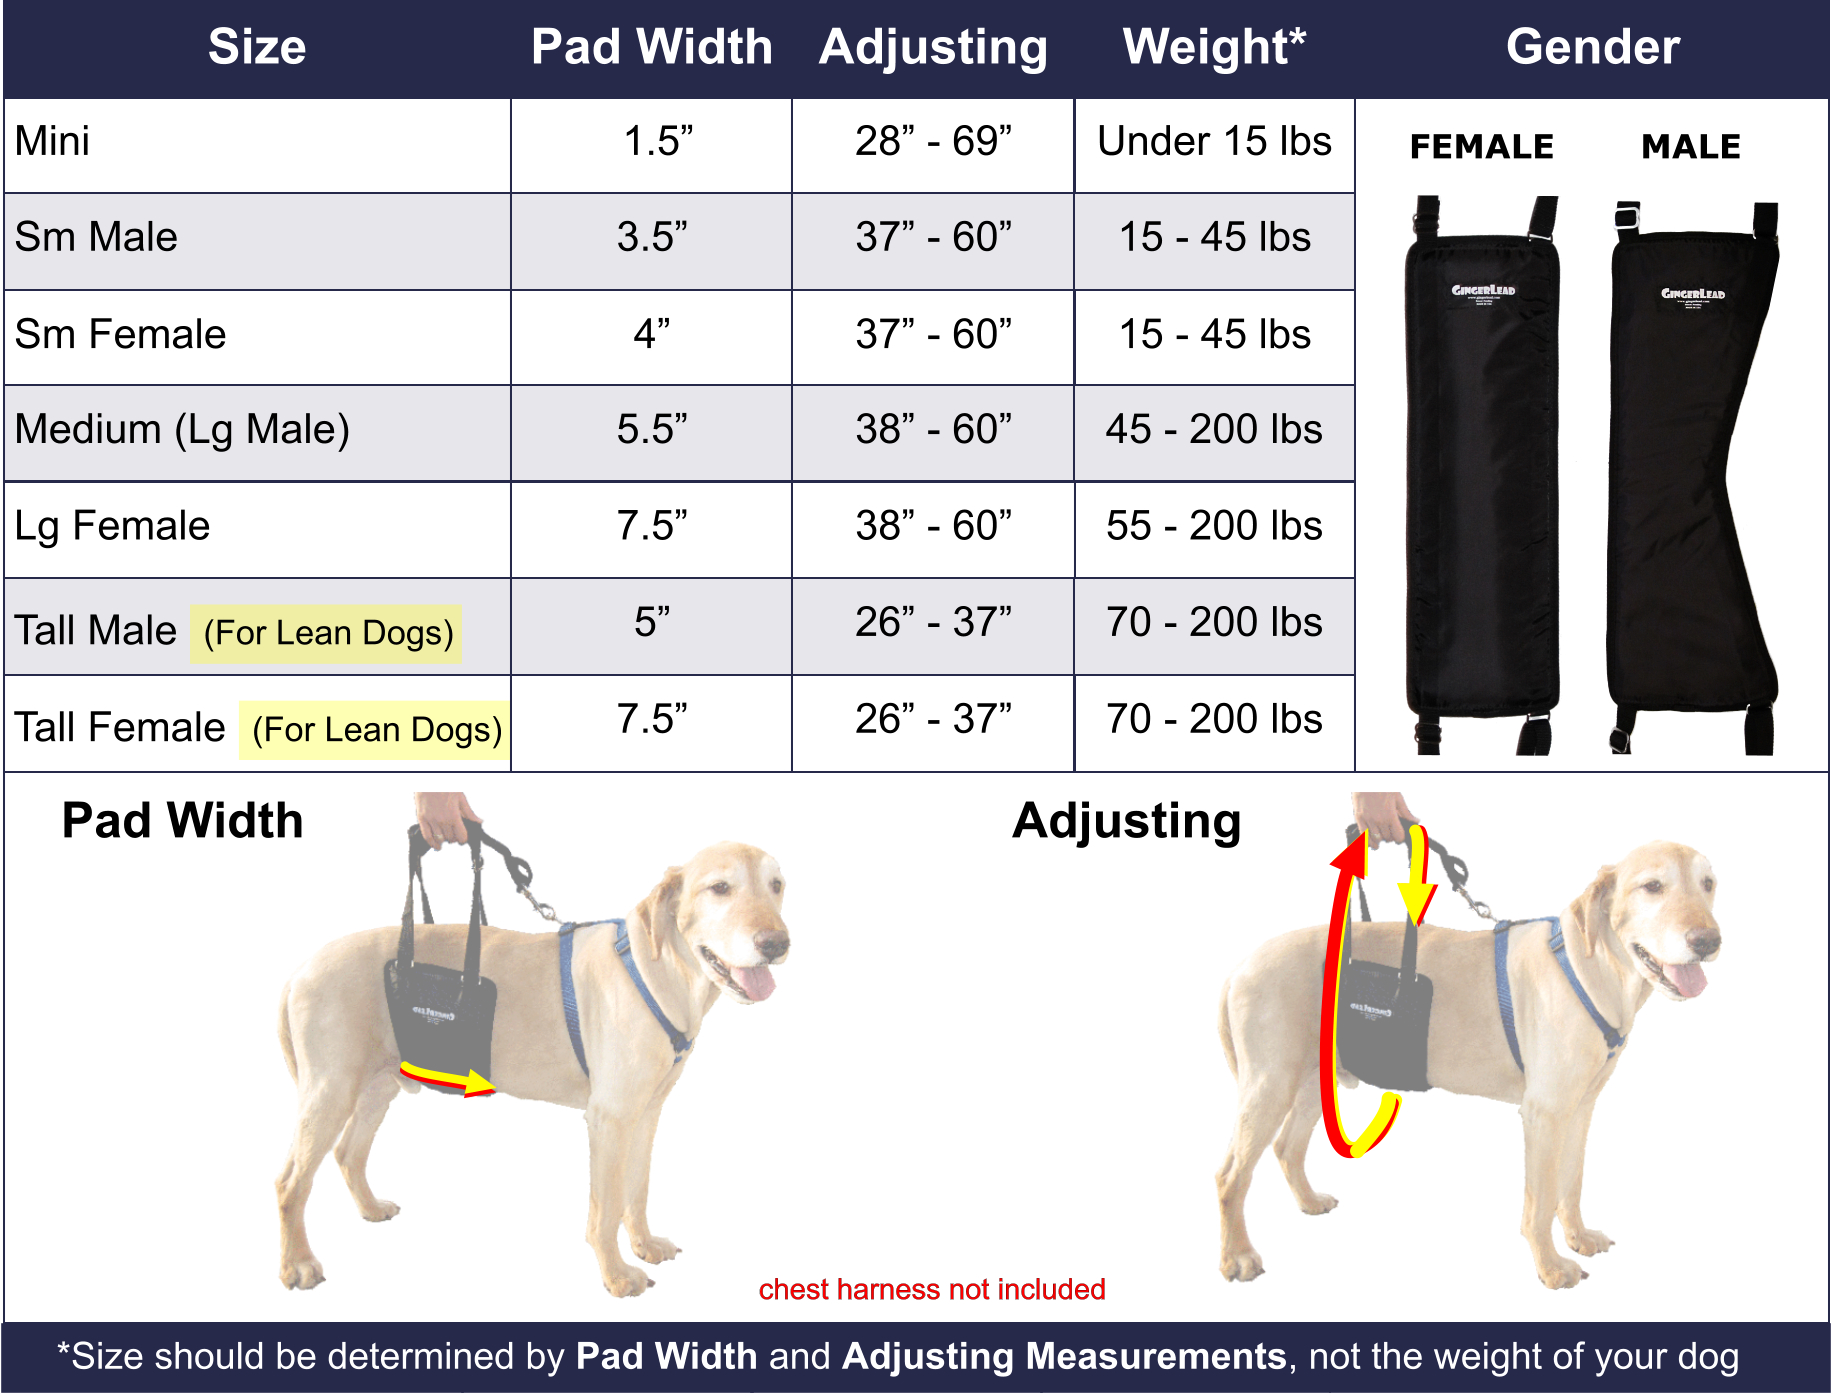 Gingerlead dog sling sizing rear support harnesses for toy to gingerlead dog sling sizing rear support harnesses for toy to giant breed dogs nvjuhfo Image collections